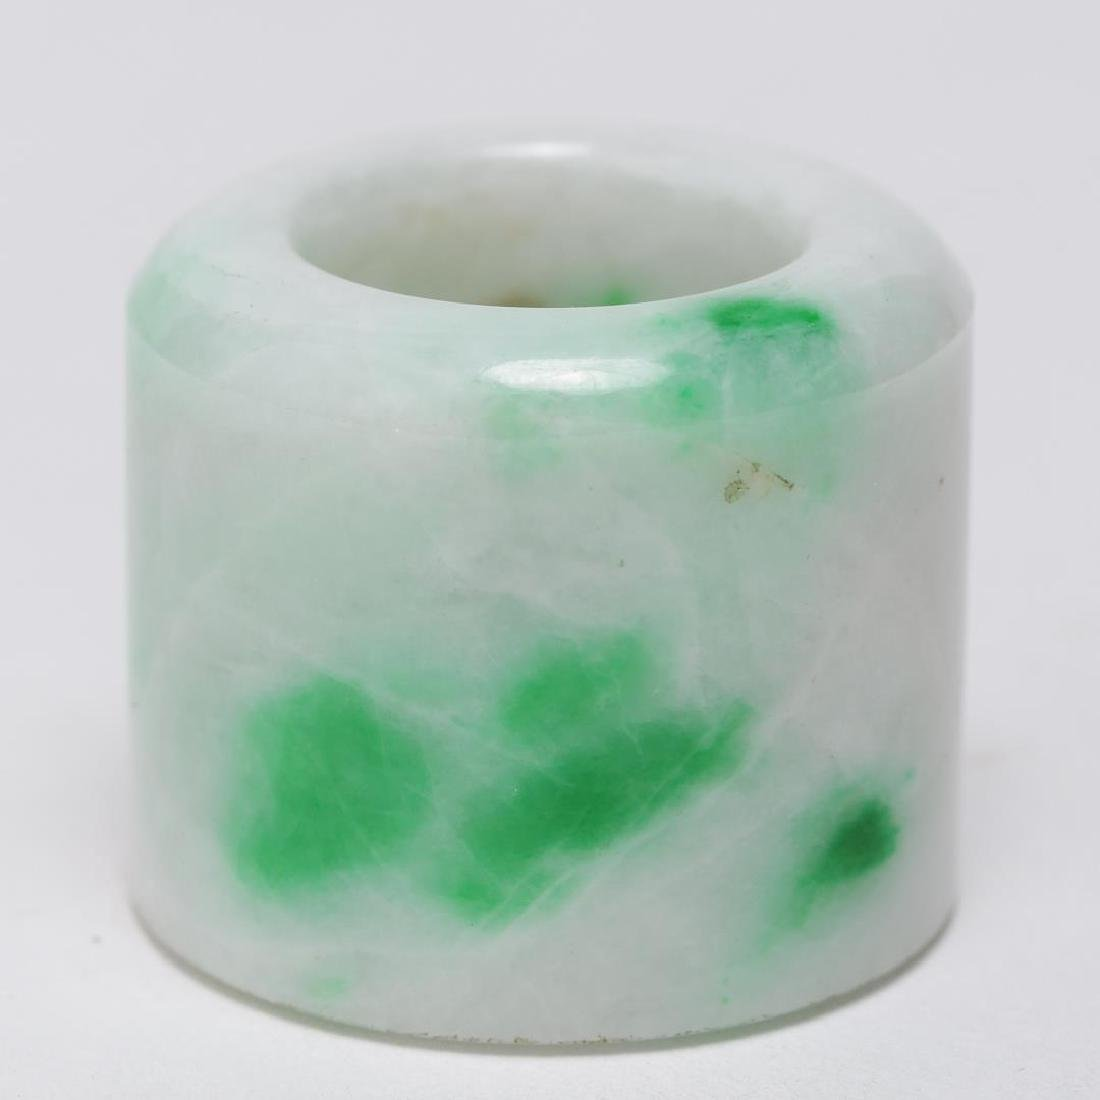 Chinese Mottled Jade Archer's or Thumb Ring, Man's